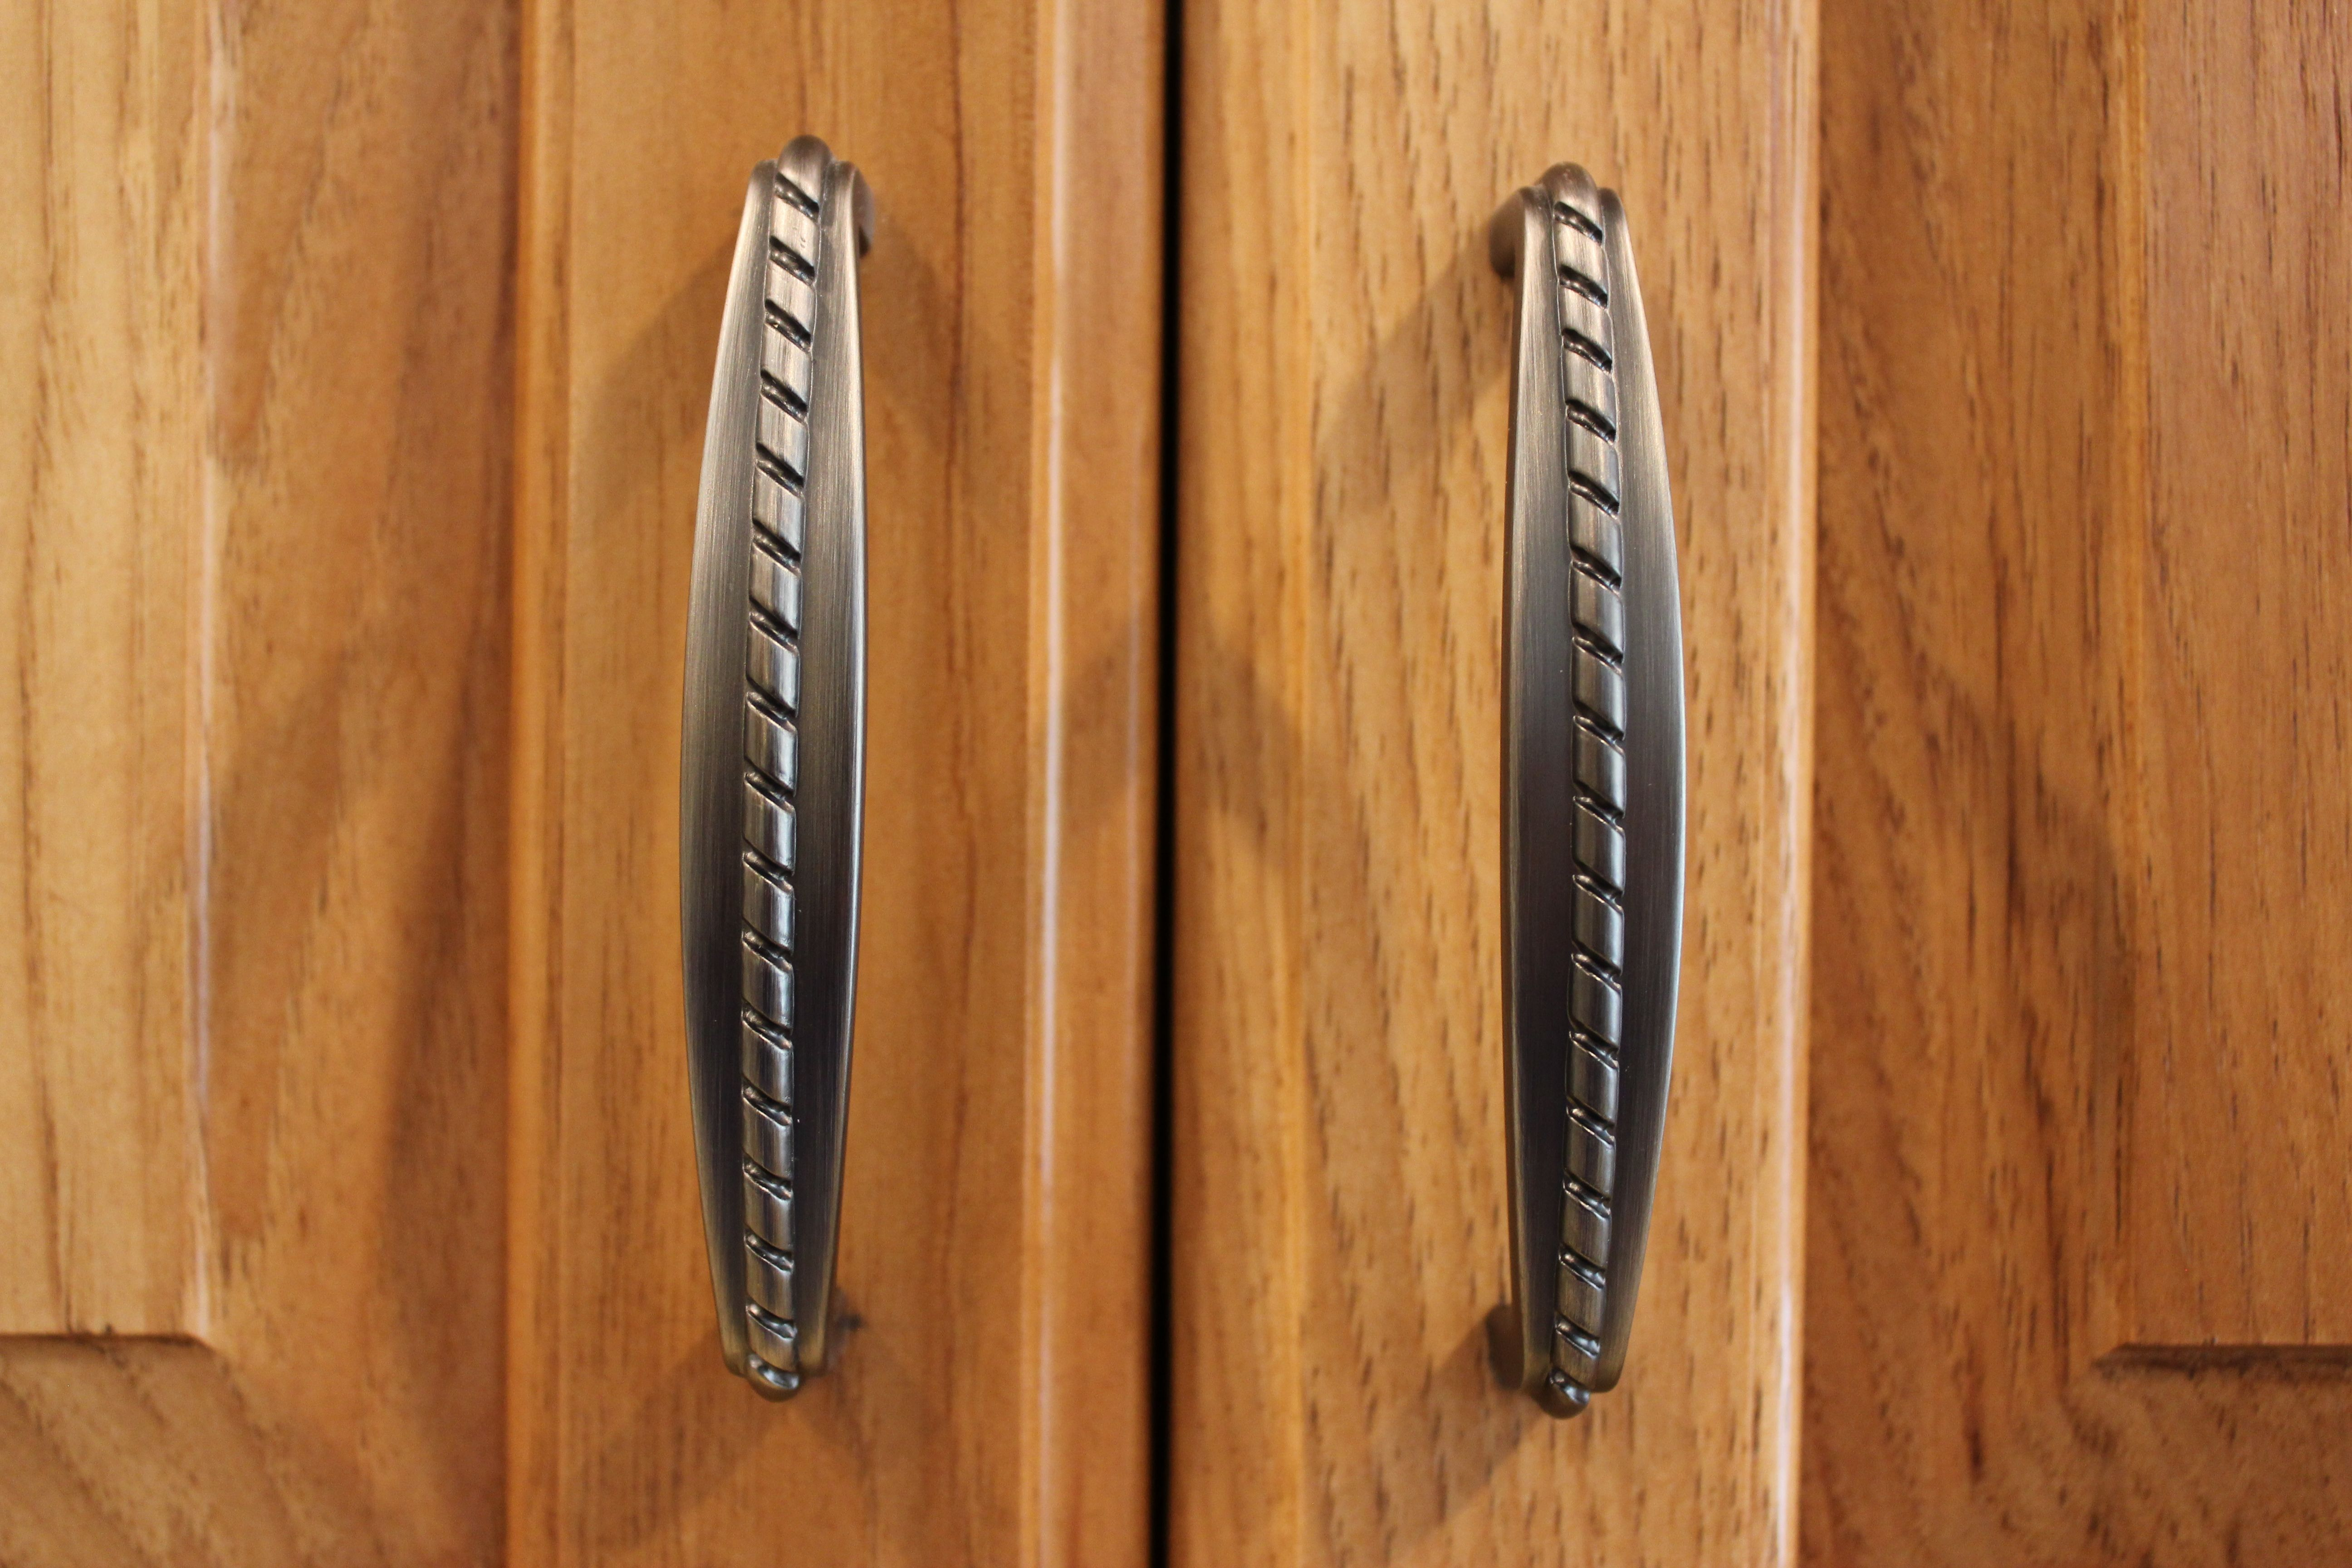 Brushed Nickel Handles On Hickory Wood Cabinets With A Fruitwood Finish Traditional Cabinets Hardware Hickory Cabinets